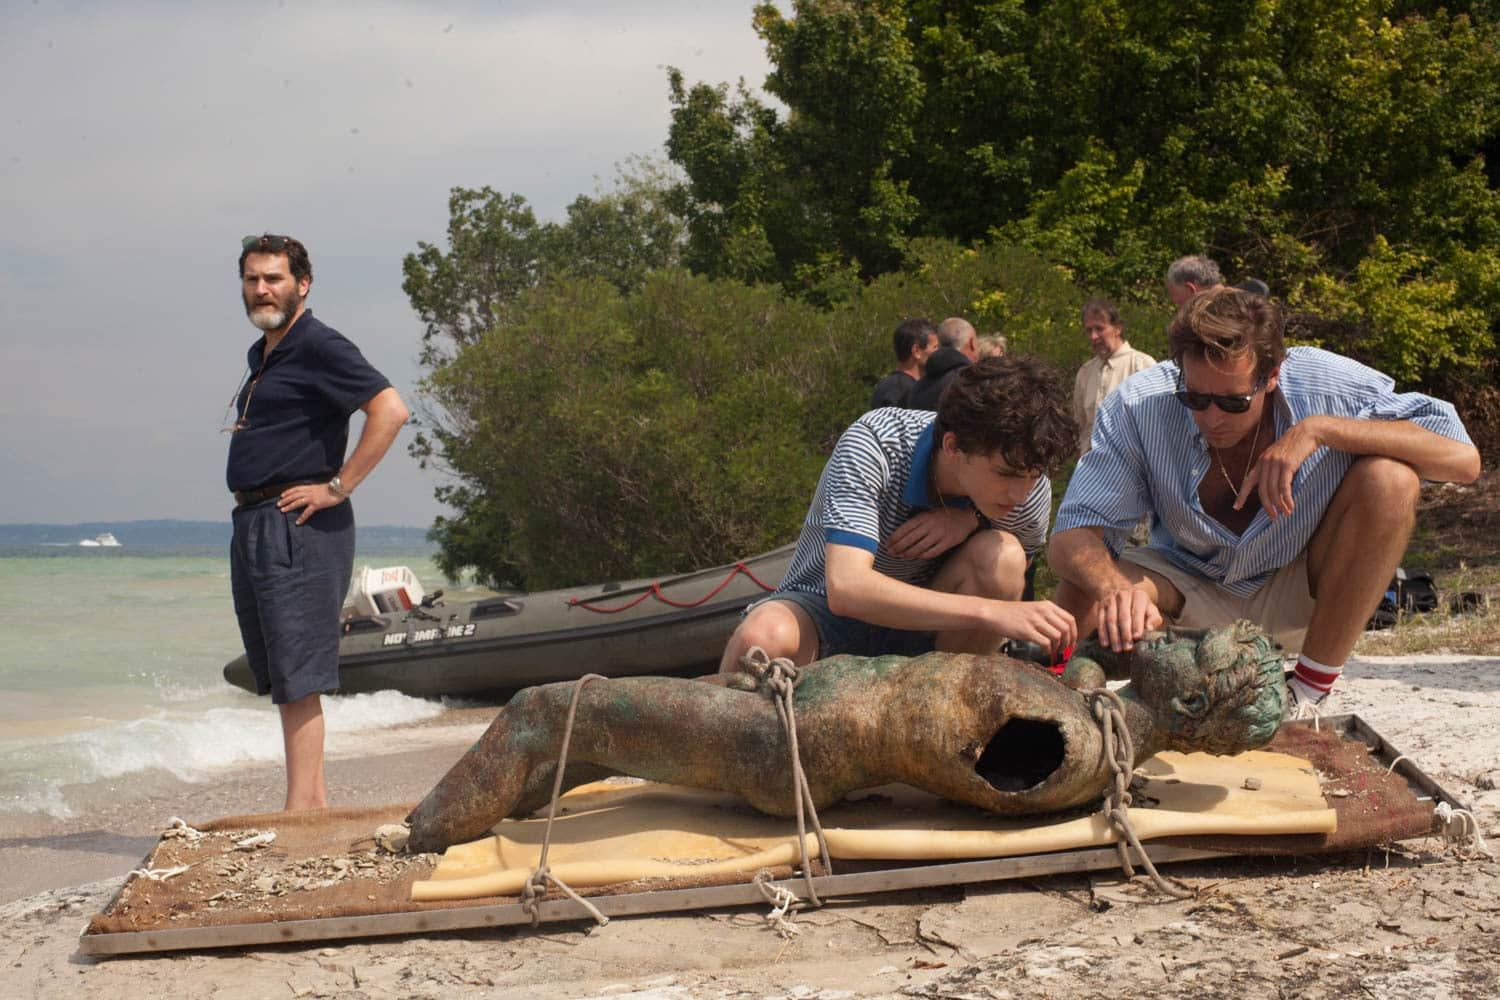 Luca Guadagnino confirma que Call Me by Your Name prepara secuela